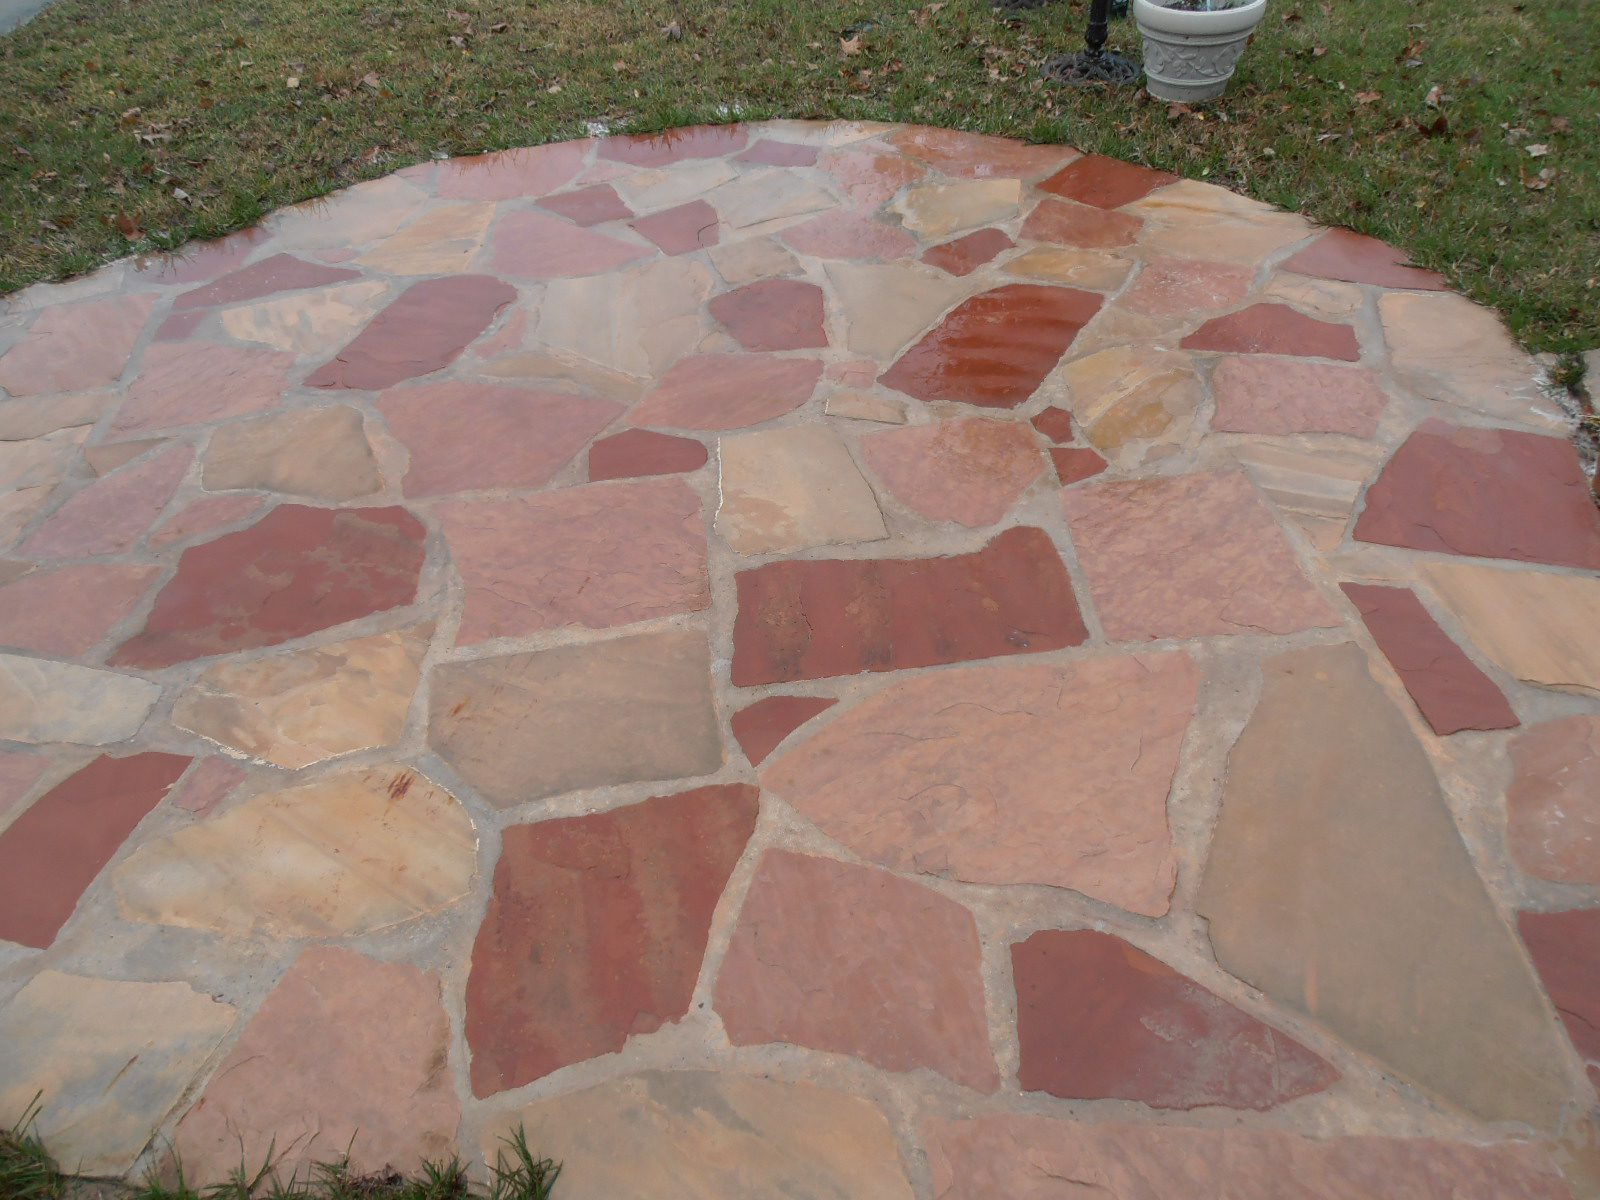 Stone patio after cleaning